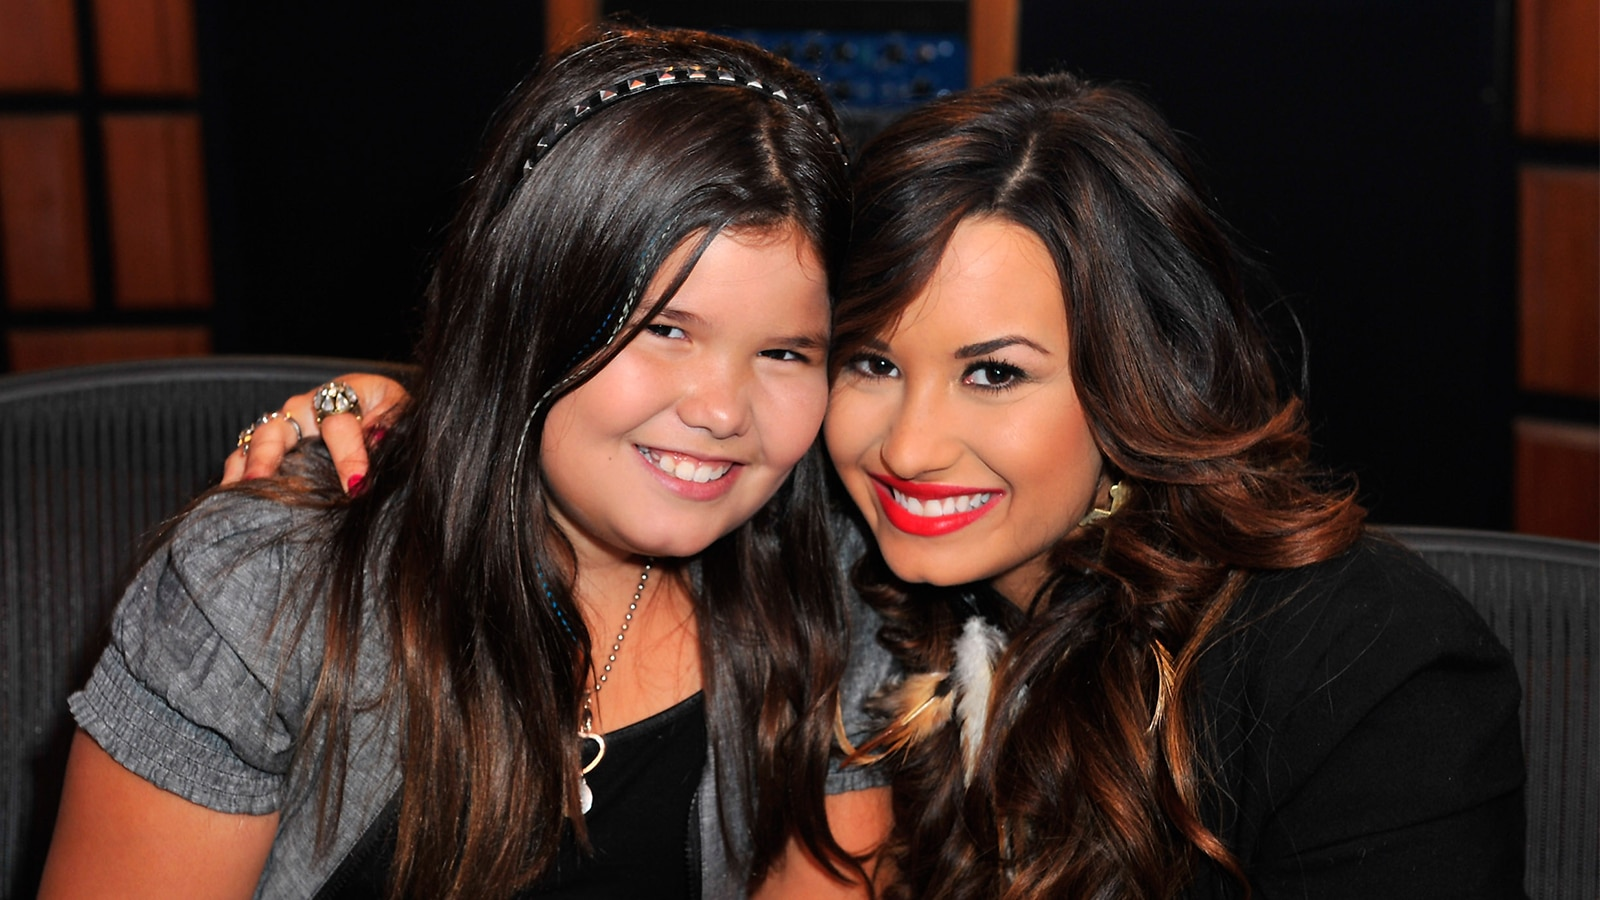 Watch access interview demi lovatos little sister madison de la watch access interview demi lovatos little sister madison de la garza is all grown up unrecognizable at her sweet 16 nbc m4hsunfo